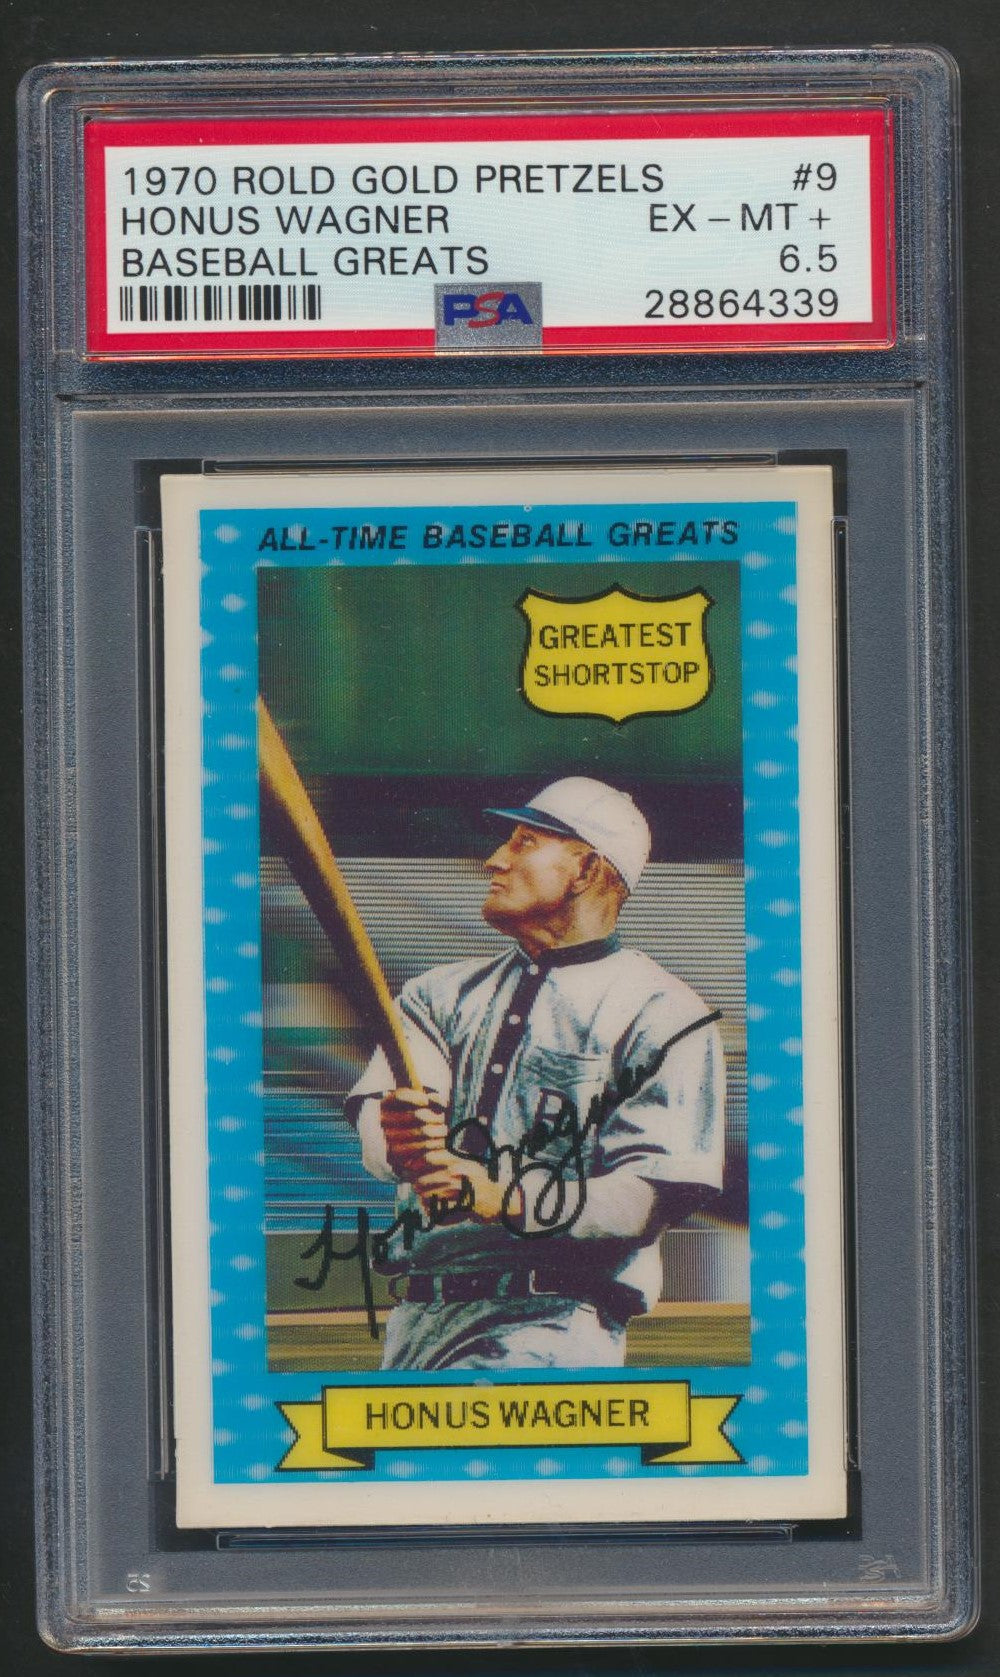 Graded 1970 Rold Gold Pretzels Baseball Card  #9 Honus Wagner - Pirates  PSA 6.5 EX-MT+